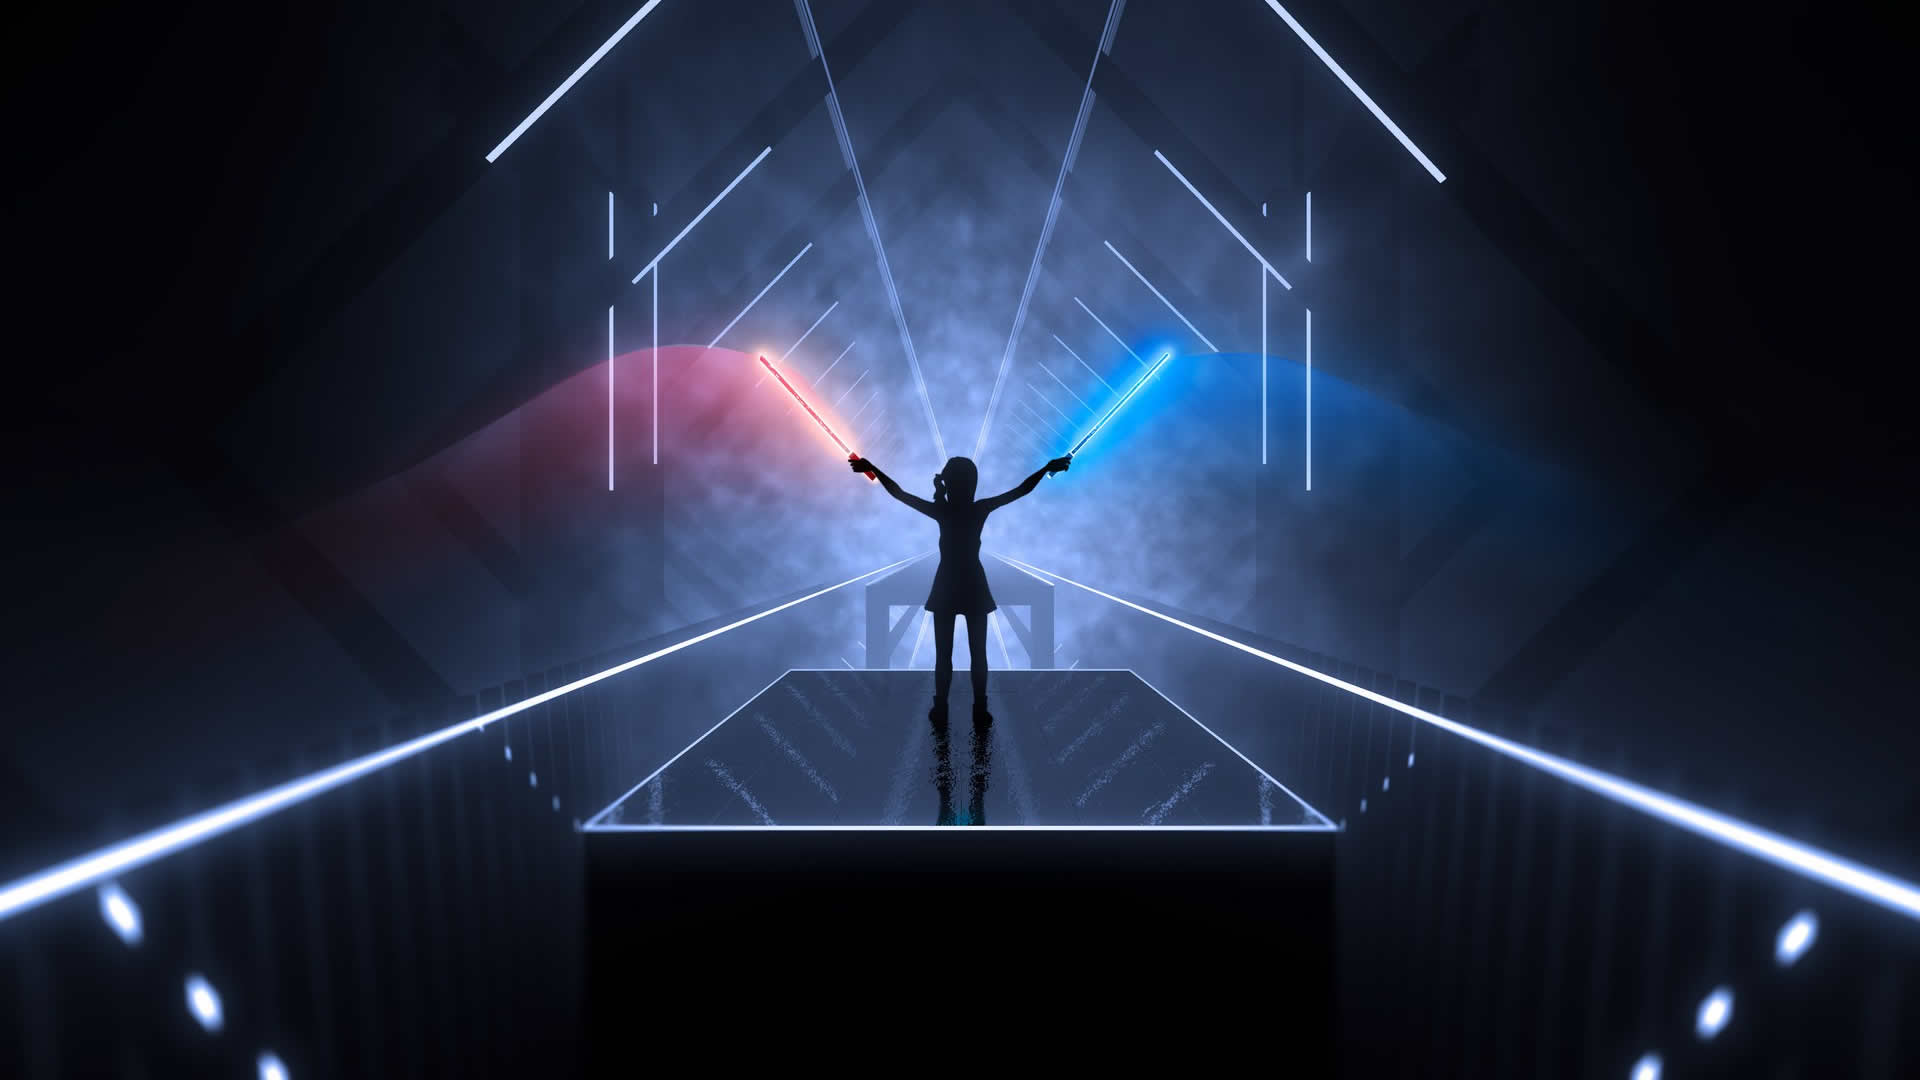 FACEBOOK beat saber ps4 playstation vr